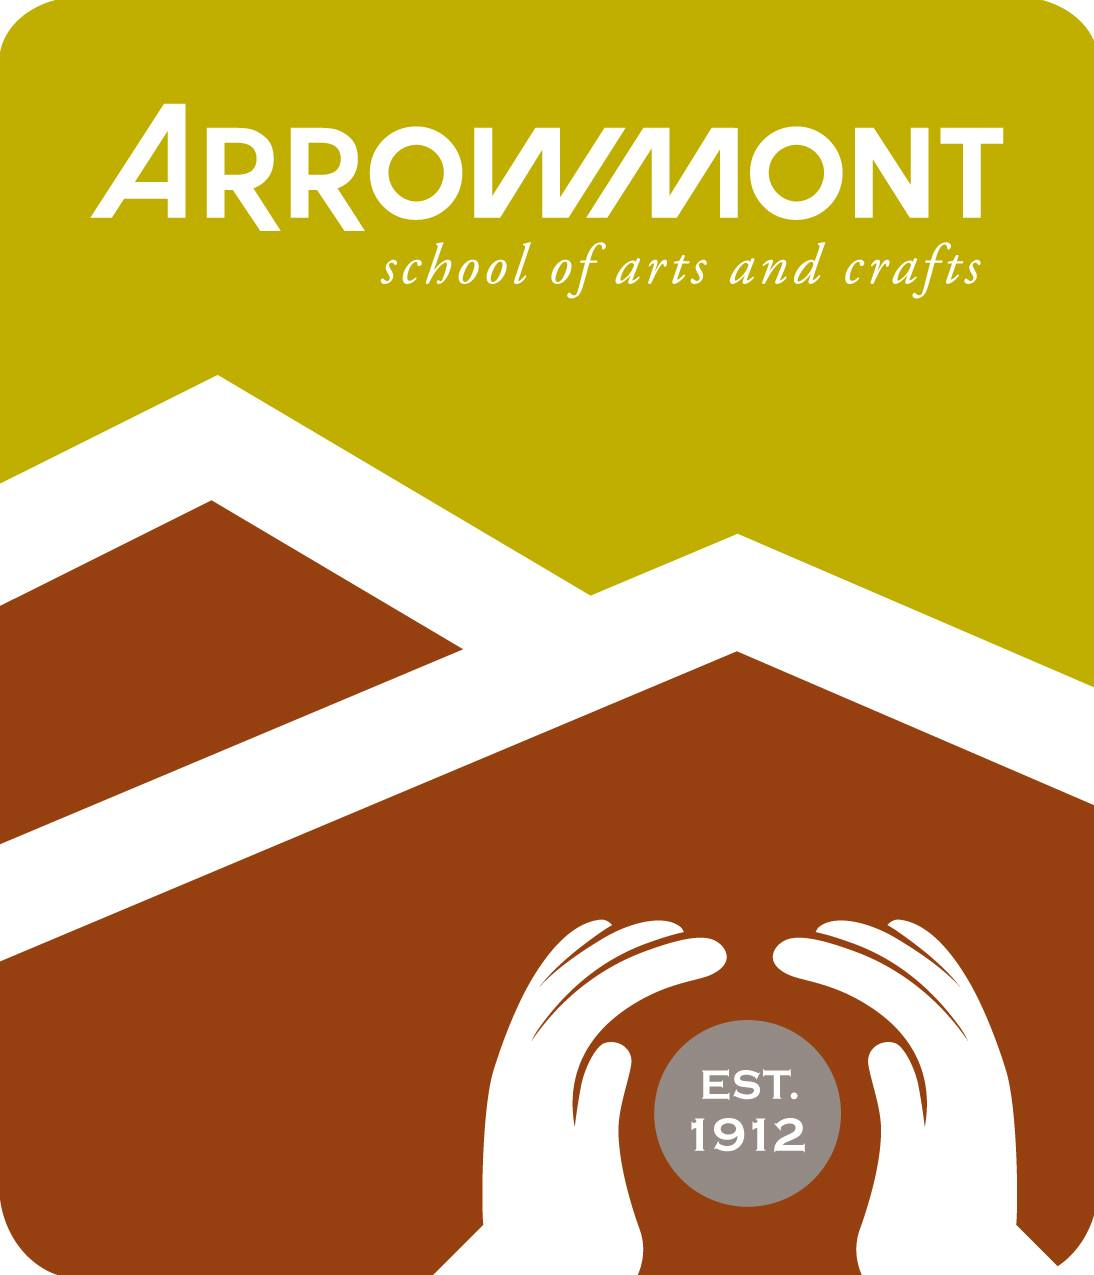 Company logo of Arrowmont School of Arts and Crafts